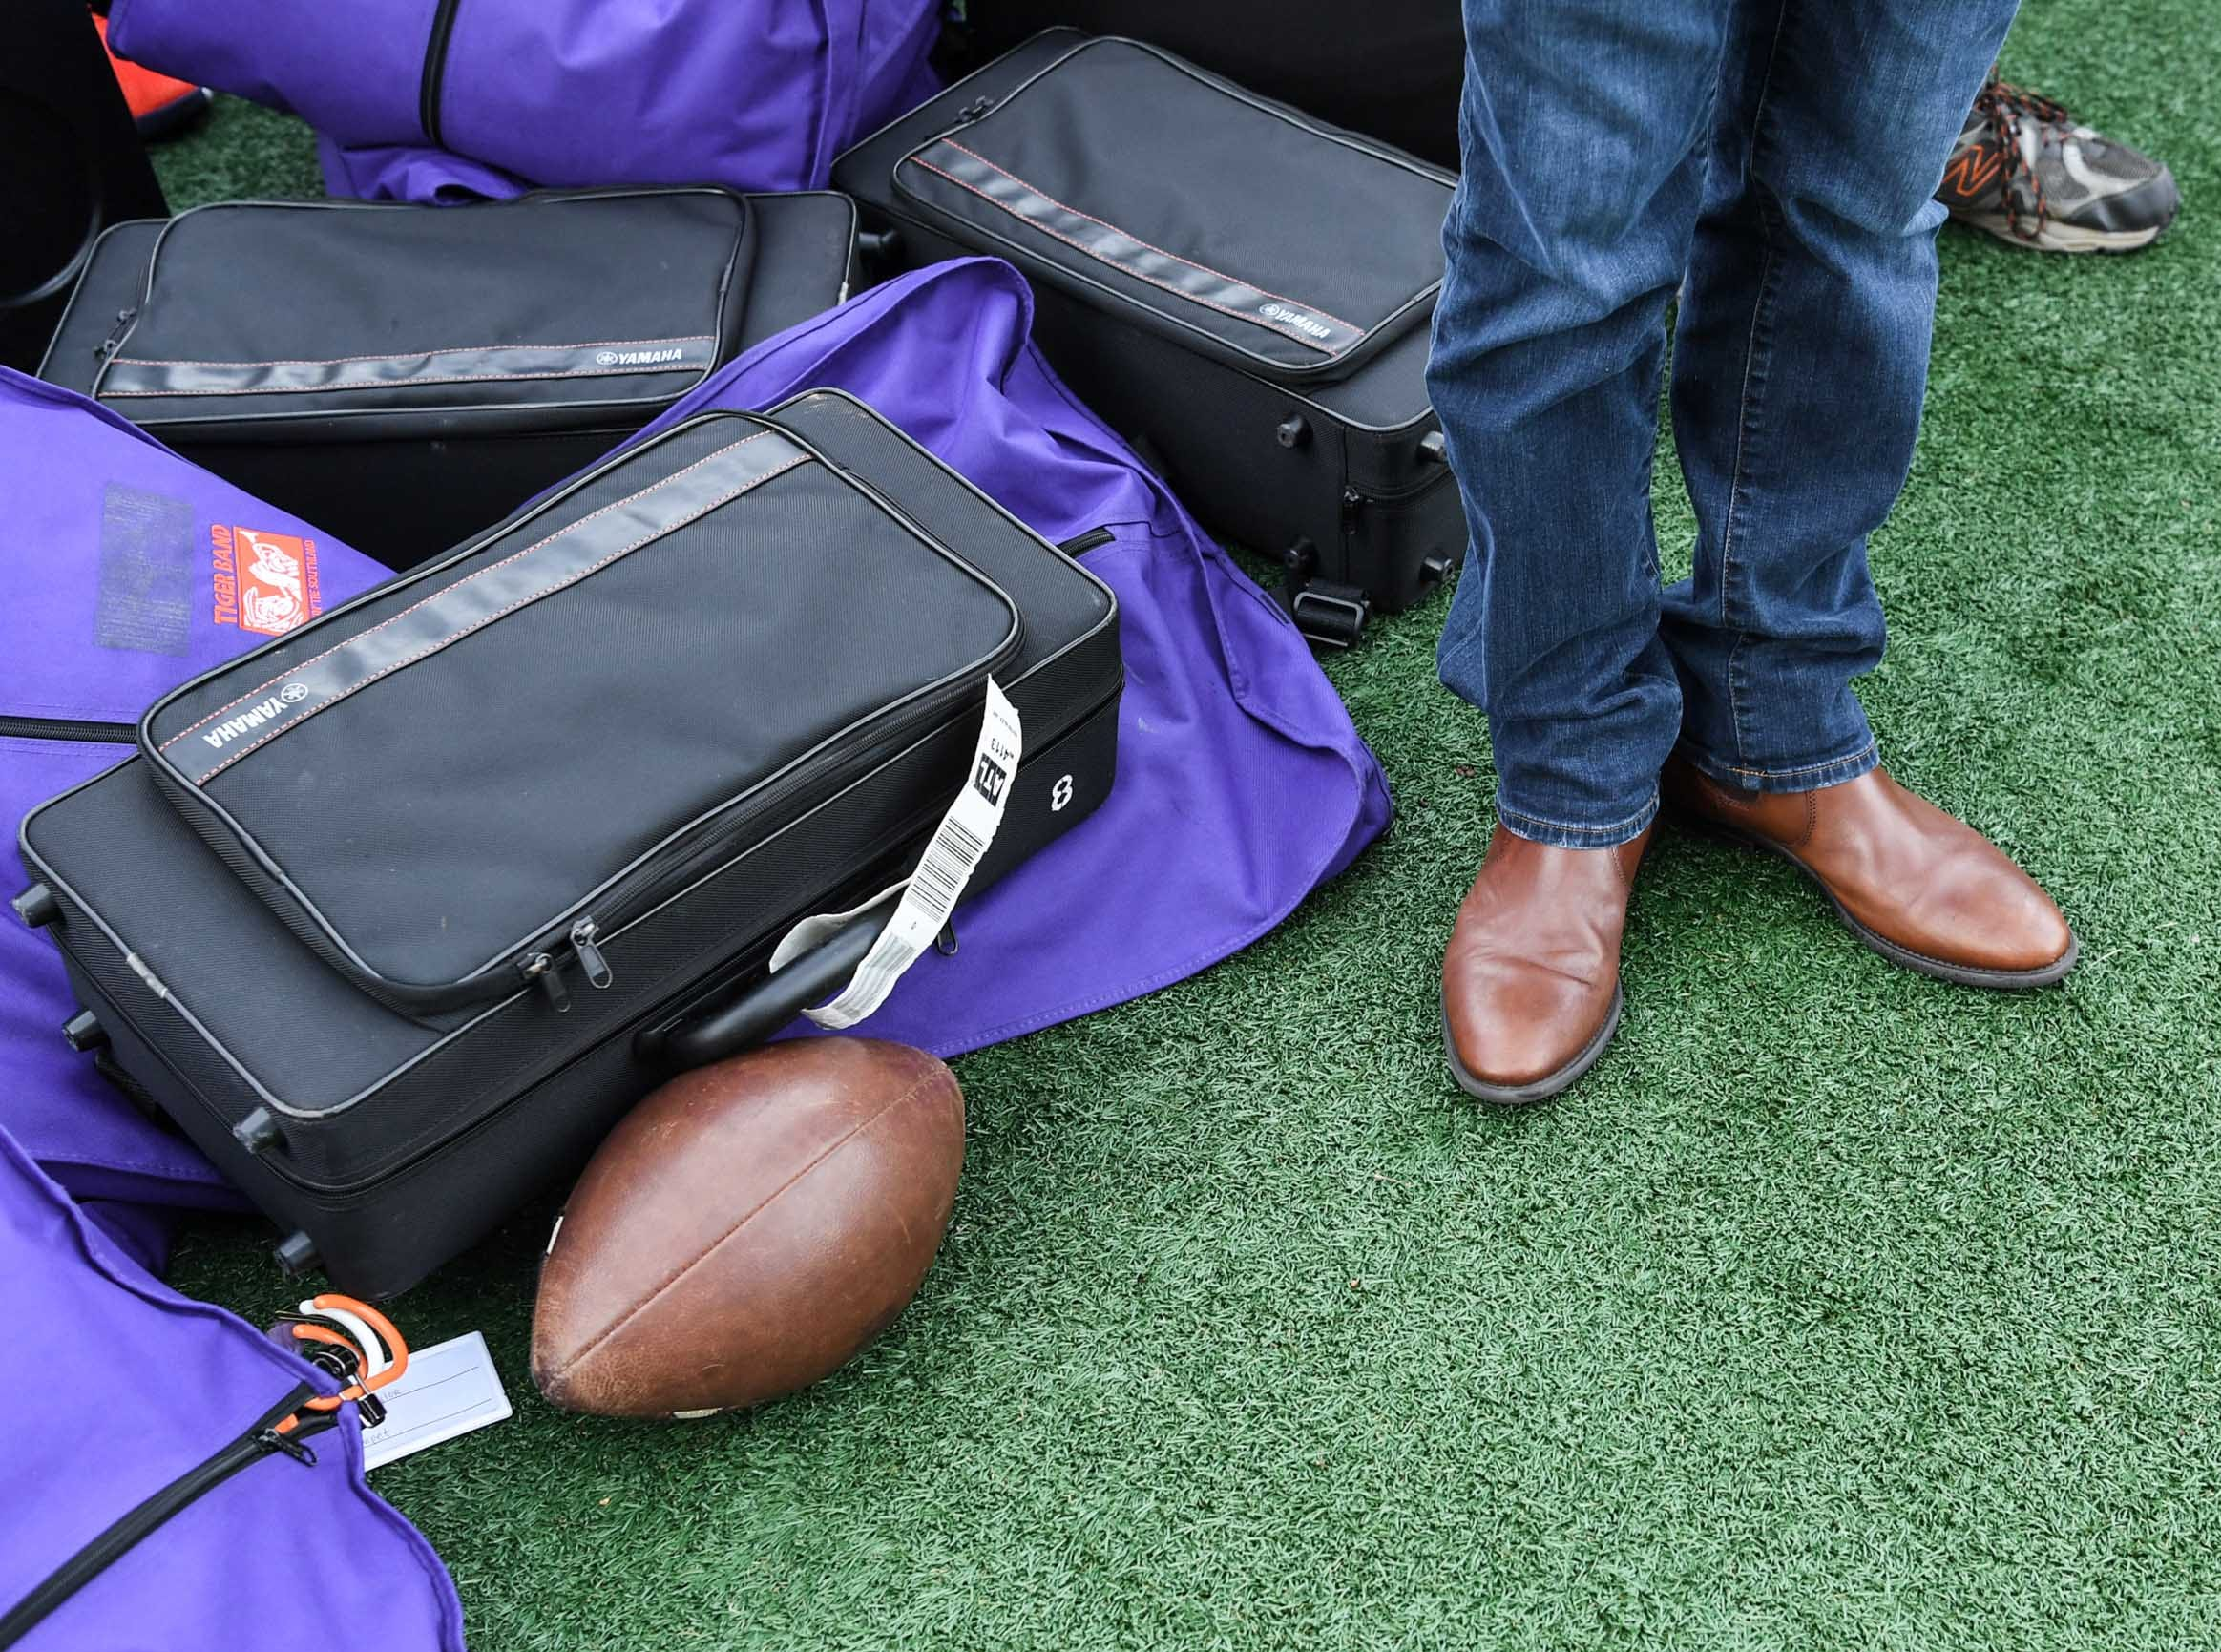 Will McAlhany plays trumpet near a football and band cases during Clemson Band practice outside the Omni in Dallas December 27, 2018.